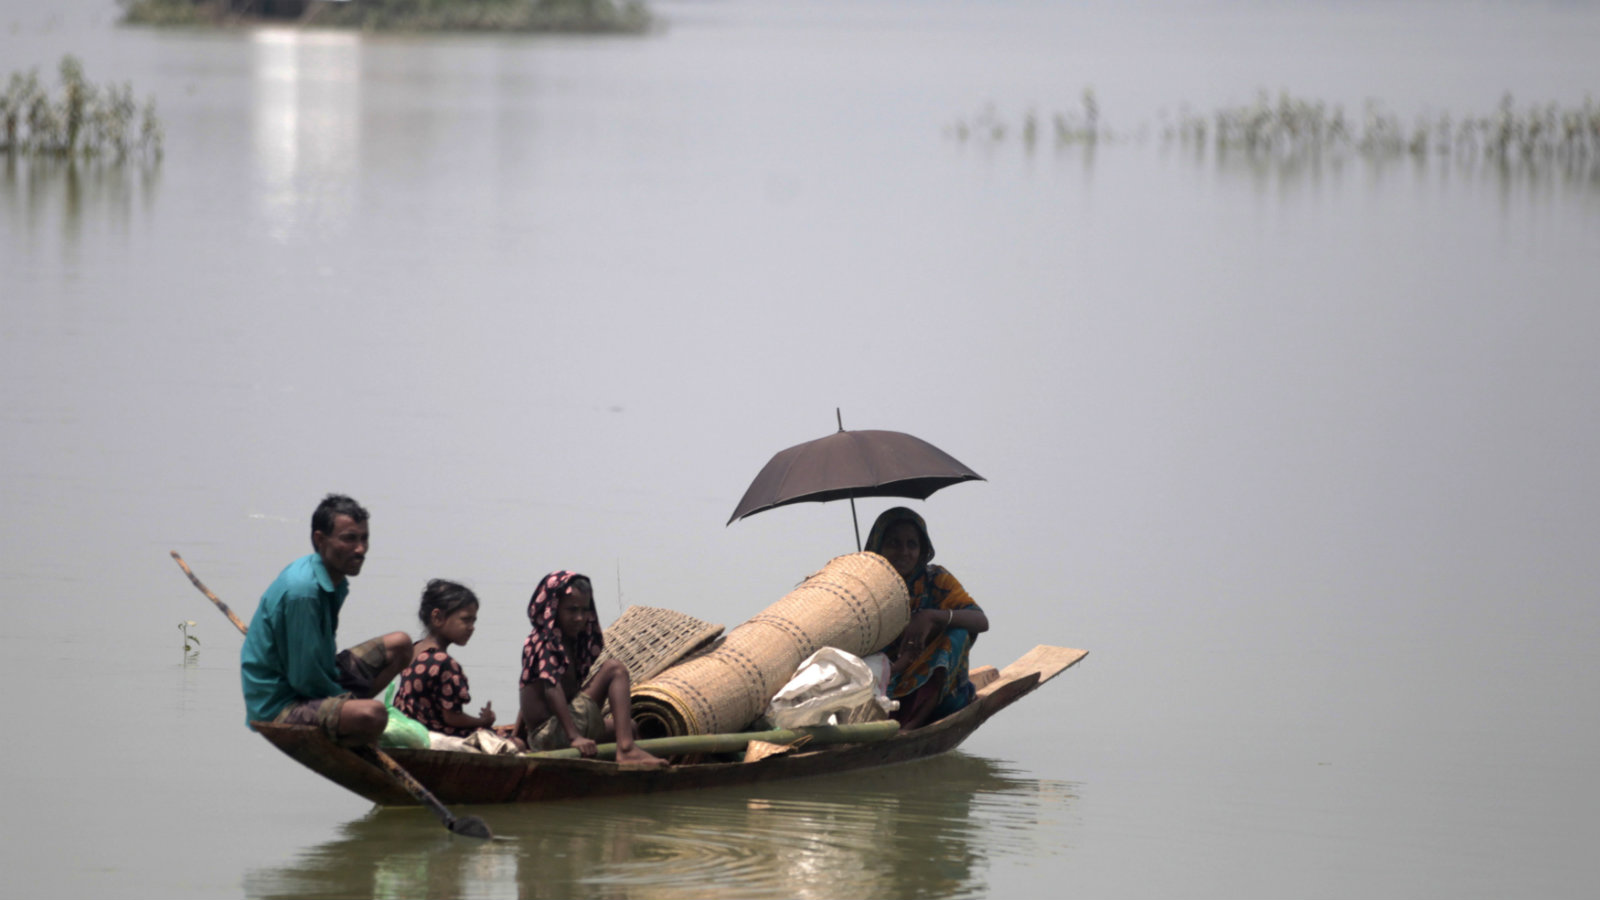 People ride on a boat with their belongings as they seek for shelter in Sylhet June 30, 2012. At least 100 people have died and 250,000 left stranded by flash floods and landslides in Bangladesh set off by the heaviest rain in years. The low-lying and densely populated country, which is in its wet season, has been battered by five days of torrential downpours.